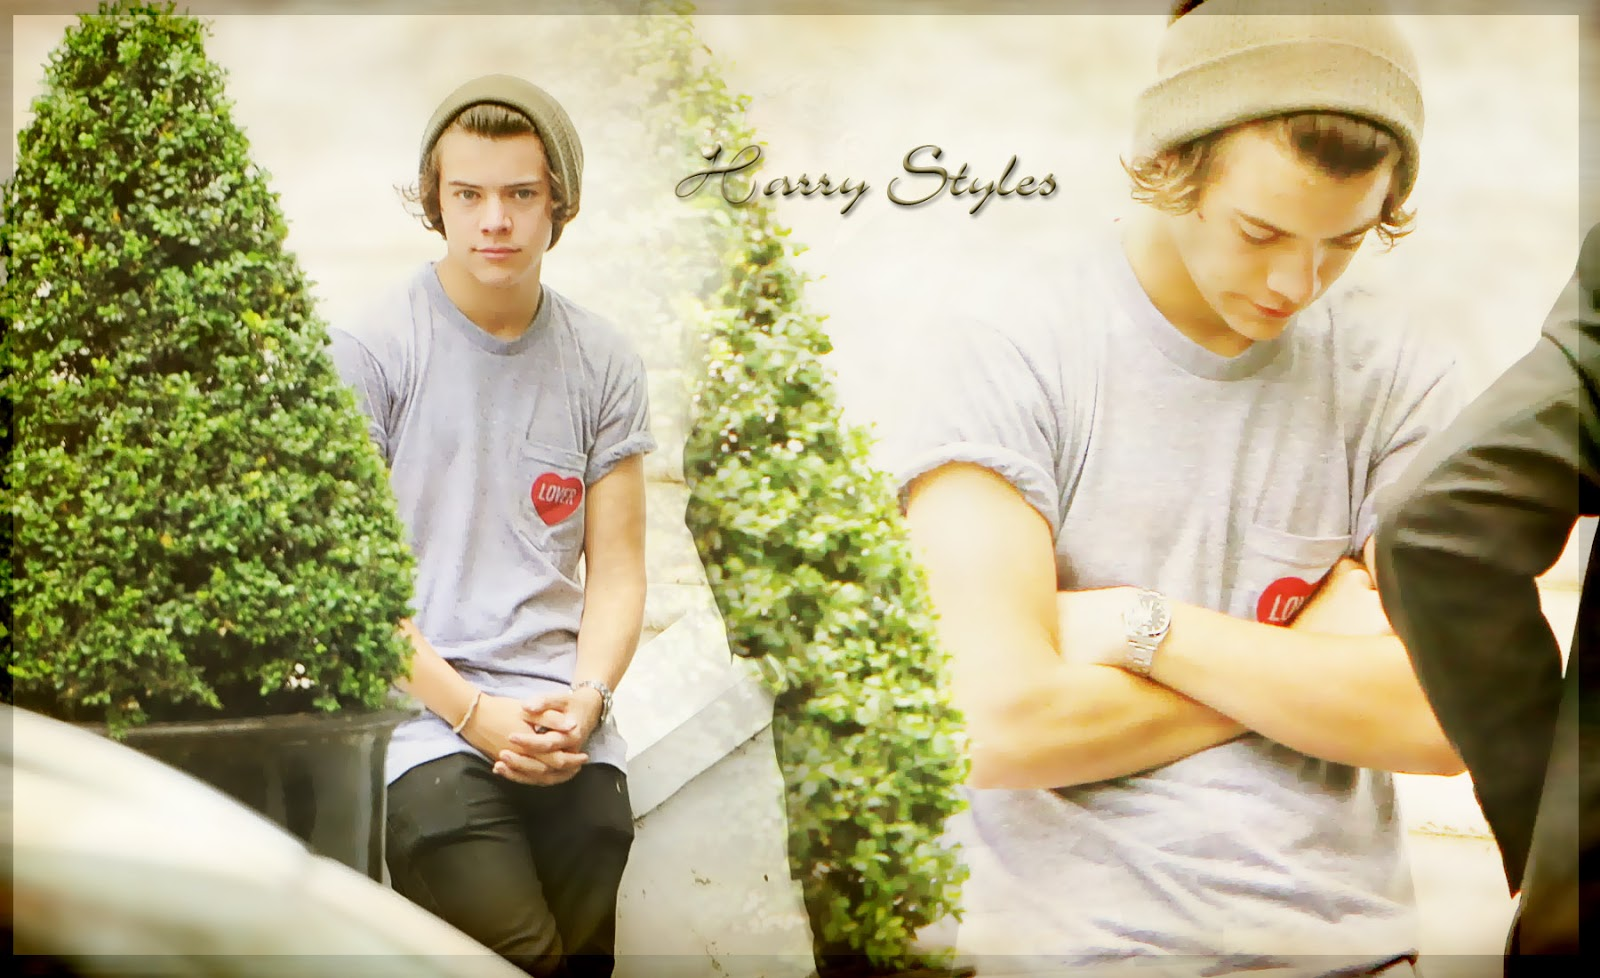 Harry Styles Wallpapers Harry Styles   outabout 12 wallpaper 1600x978